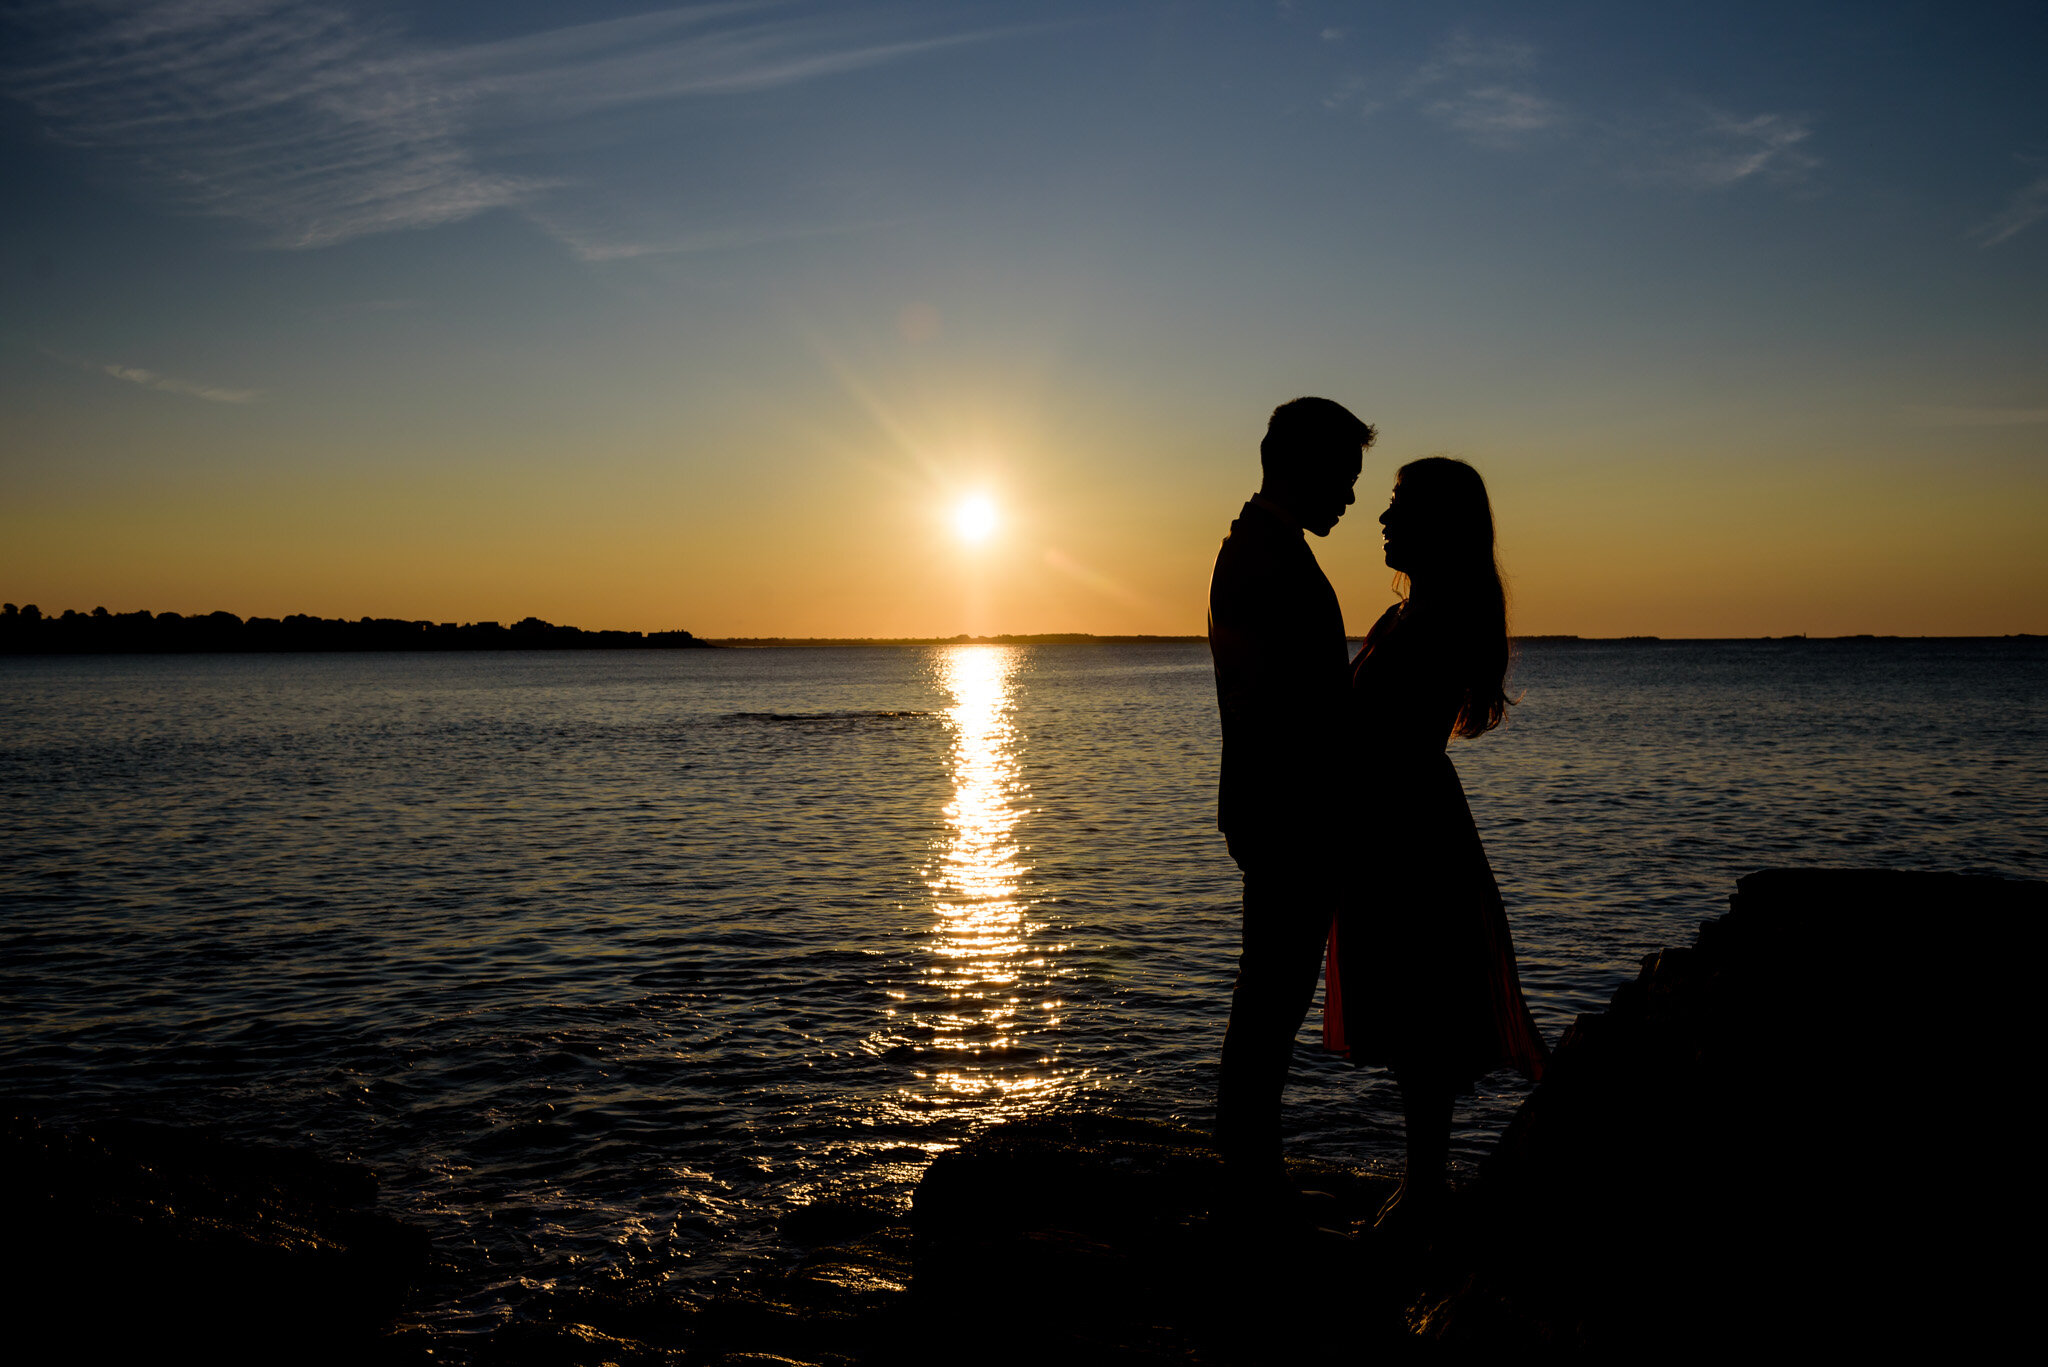 Silhouette of man and woman at sunrise in Newport